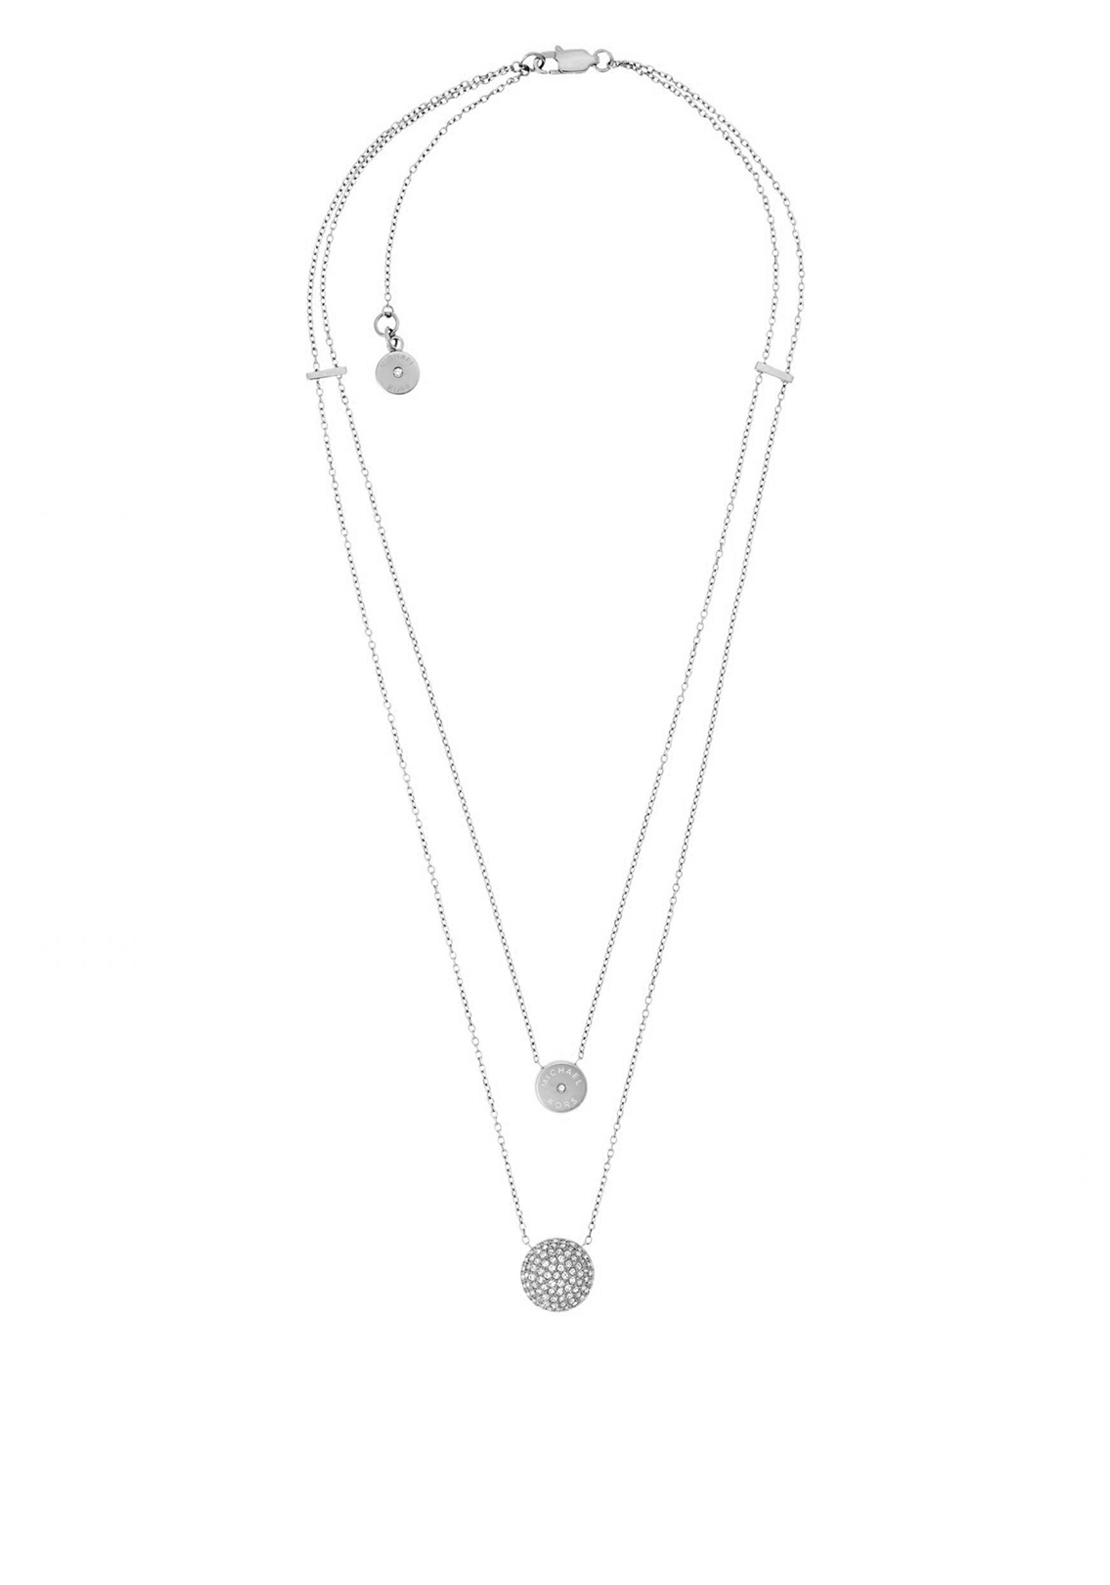 Michael Kors Two Layer Pendant Necklace, Silver